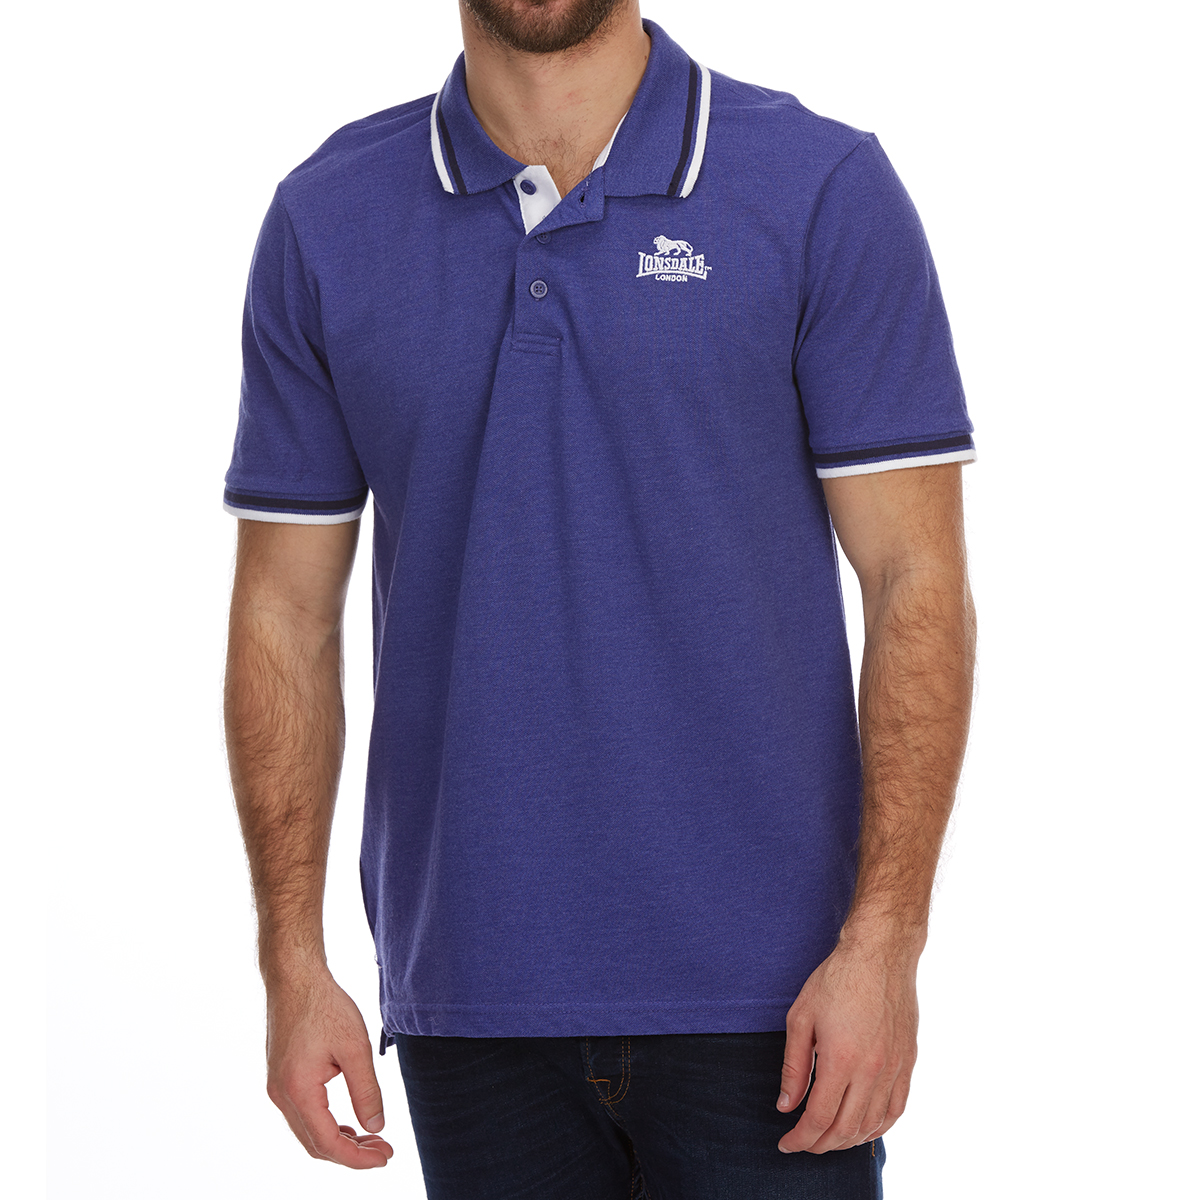 Lonsdale Men's Short-Sleeve Tipped Polo Shirt - Blue, 4XL